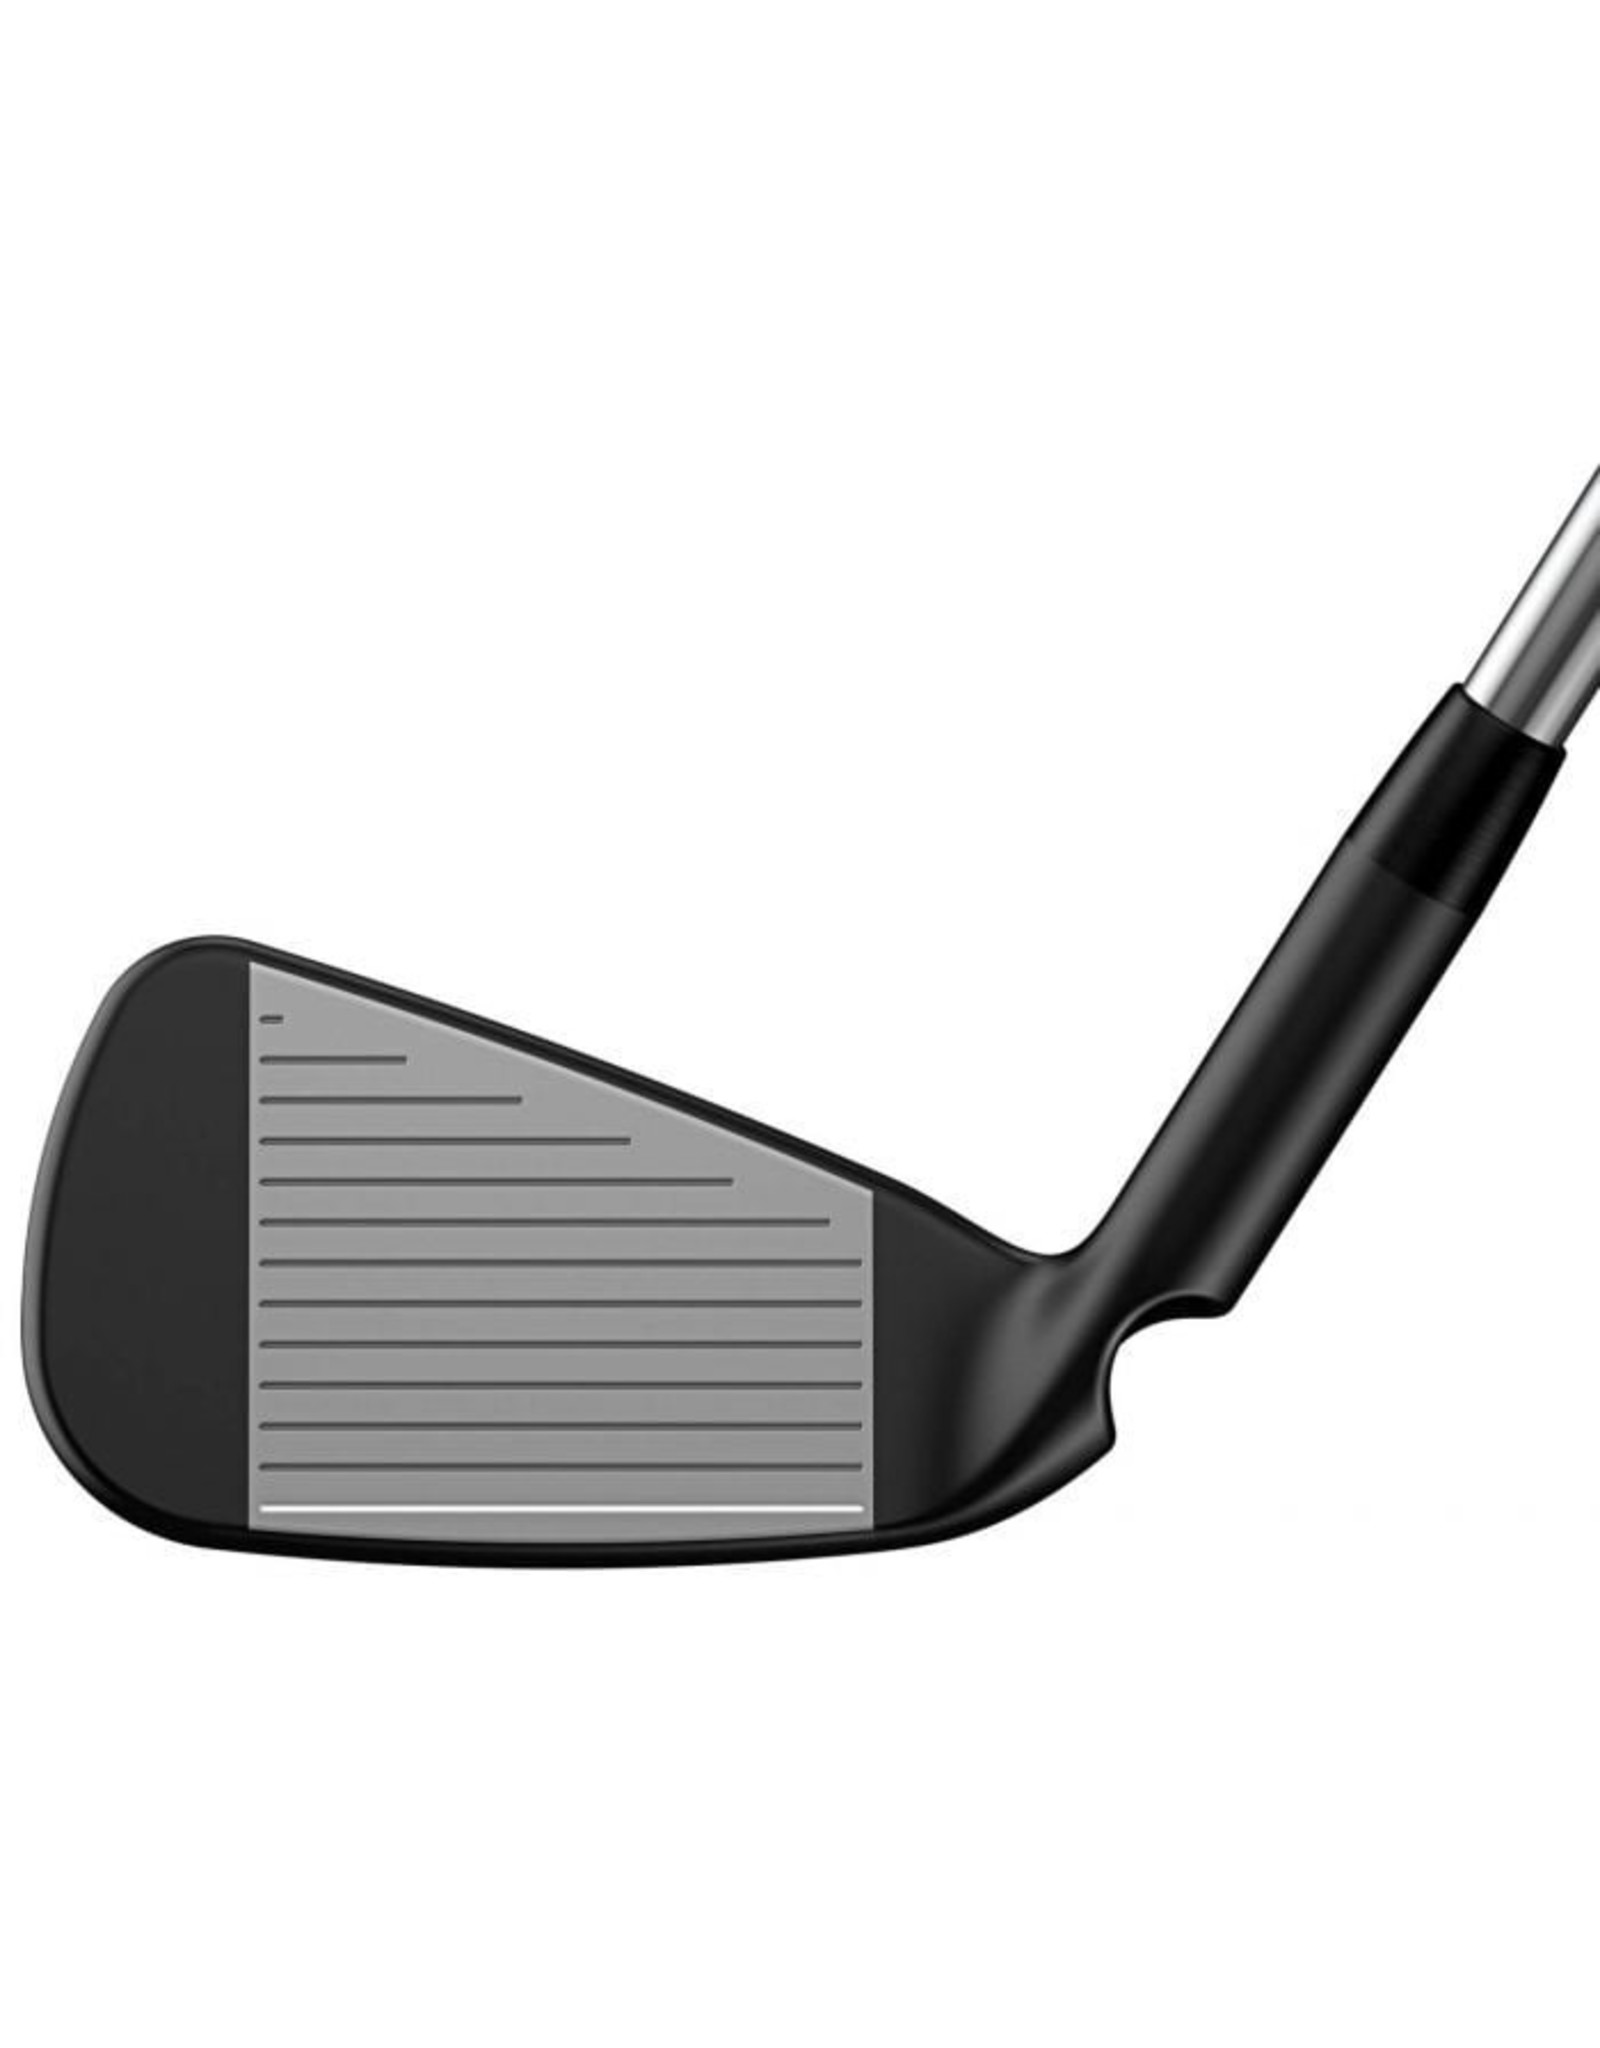 PING PING 425 CROSSOVER